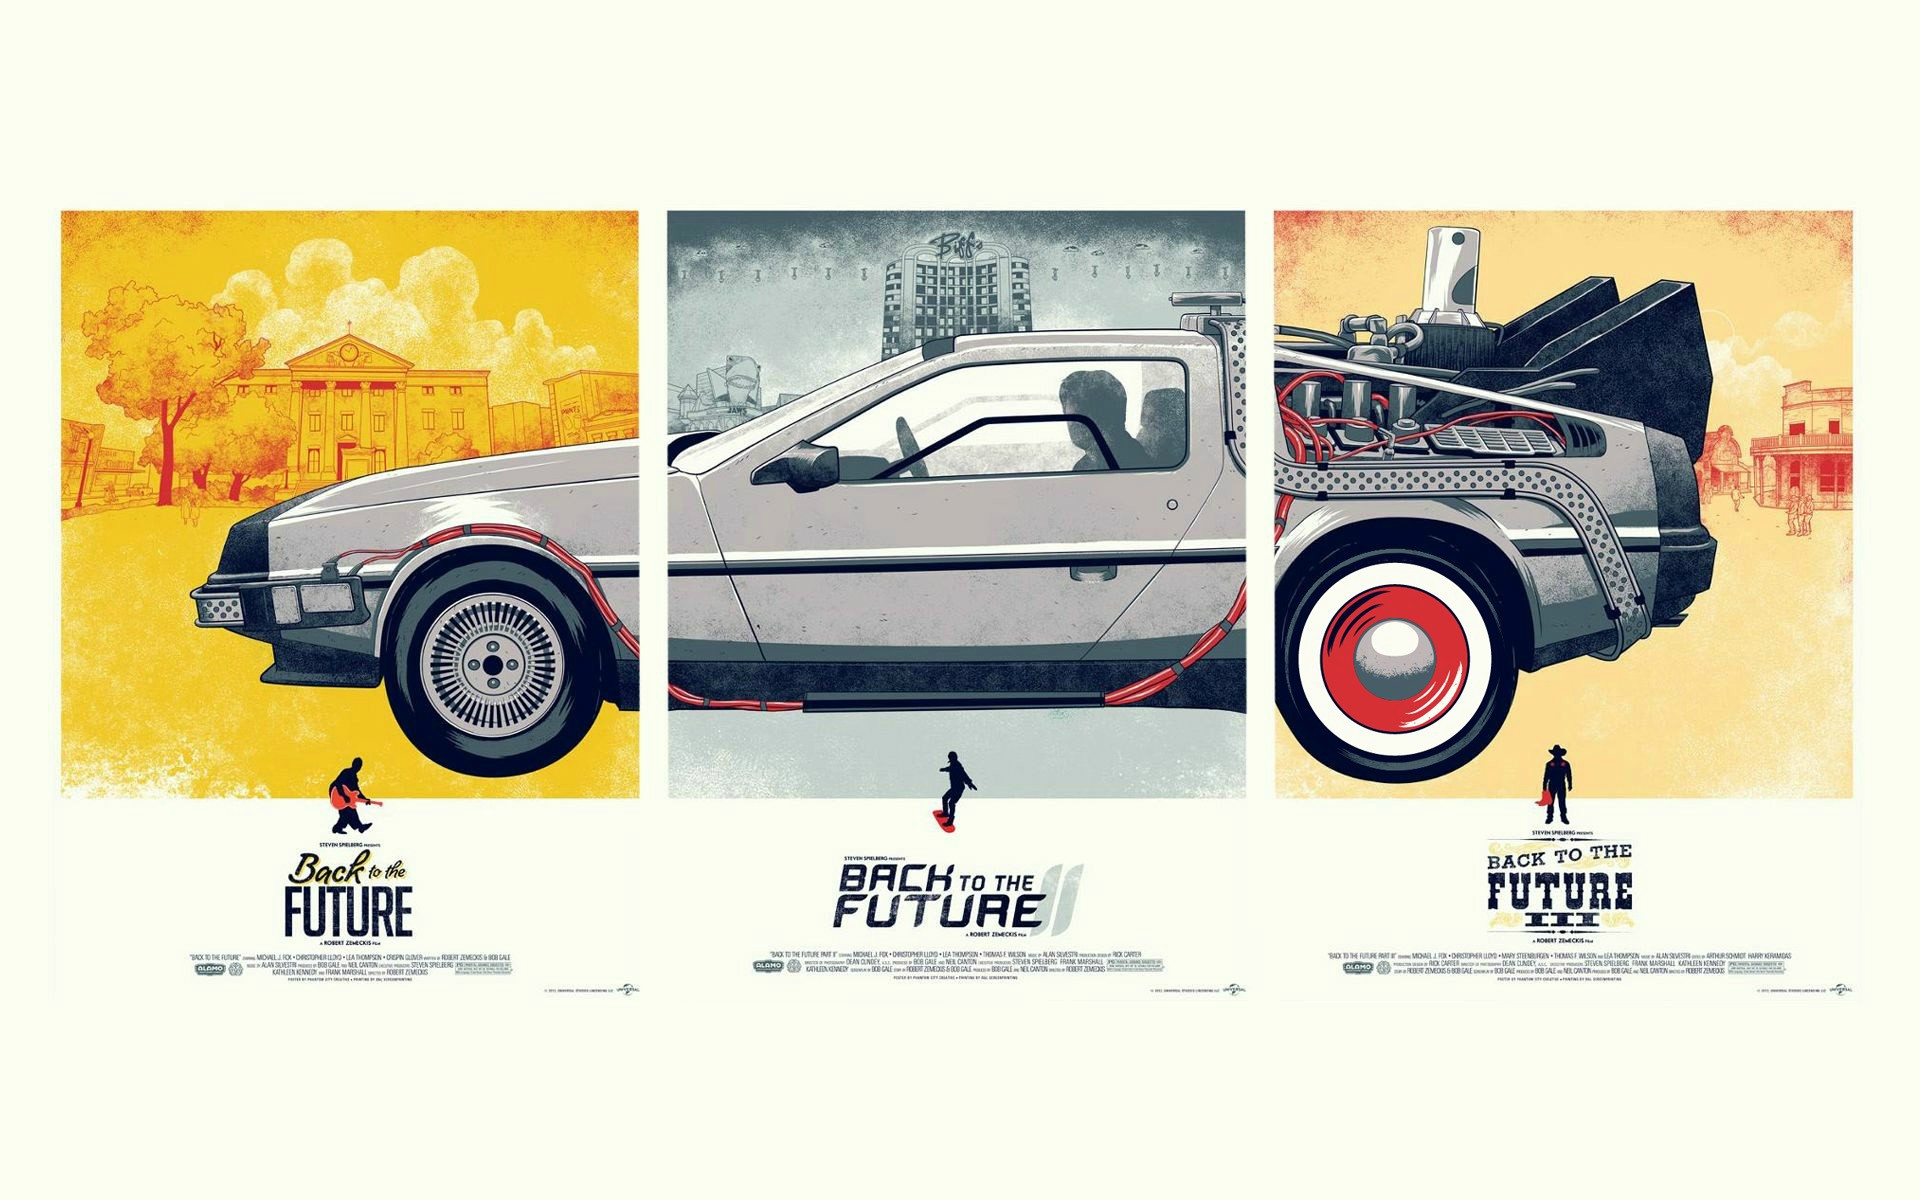 Back to the future poster back to the future 30816326 1920 1200 jpg